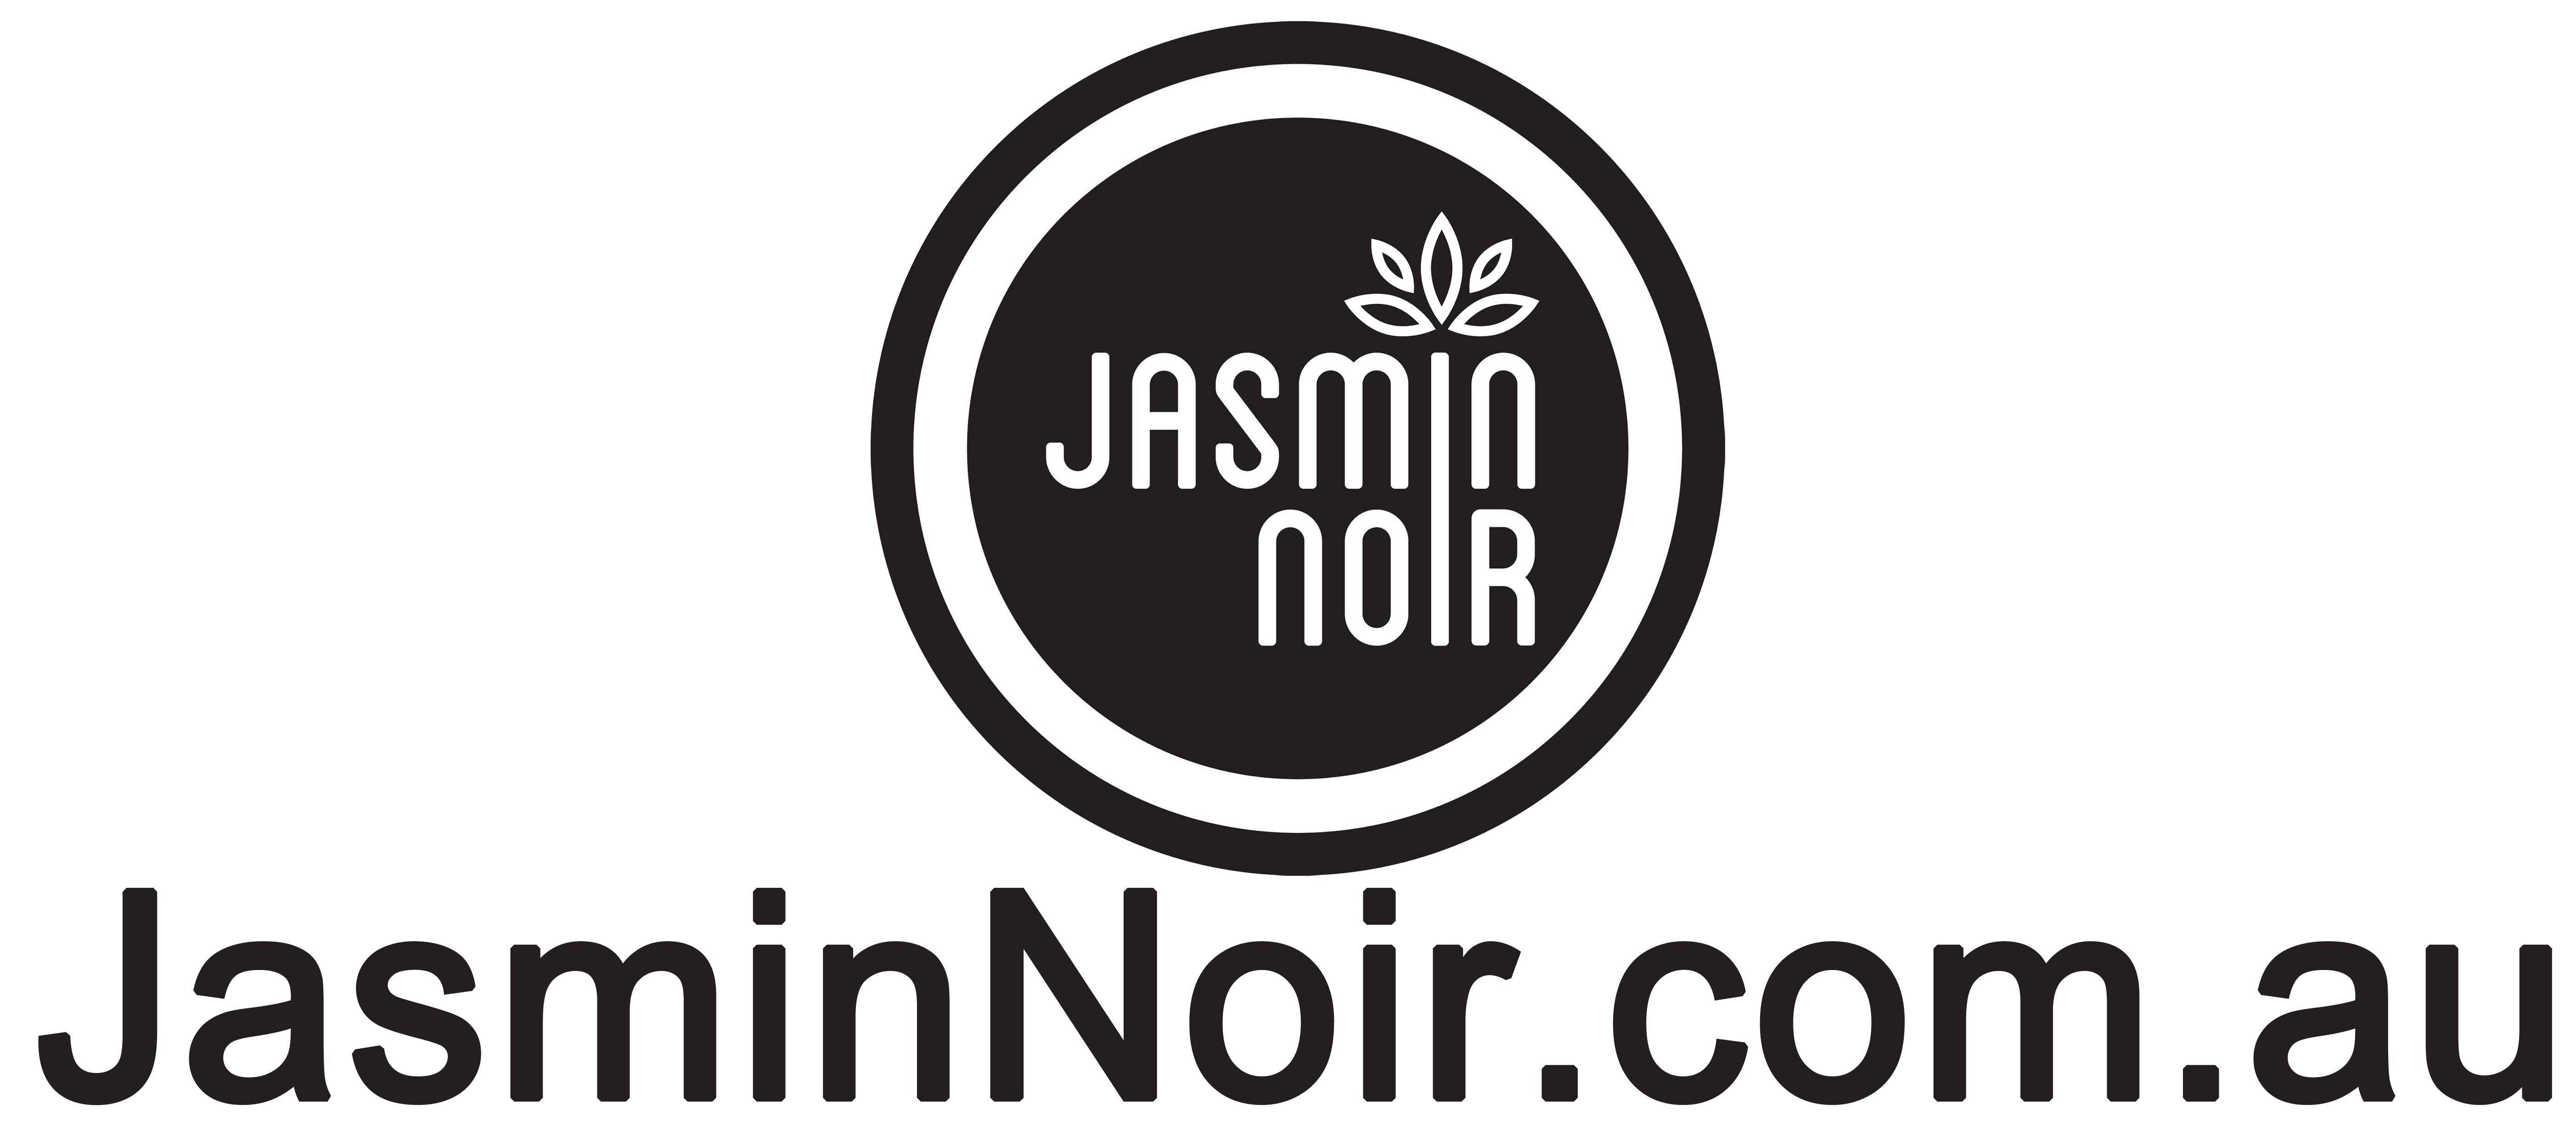 Jasmin Noir: Perfume and EDT online Australia | Shop Fragrances and brands